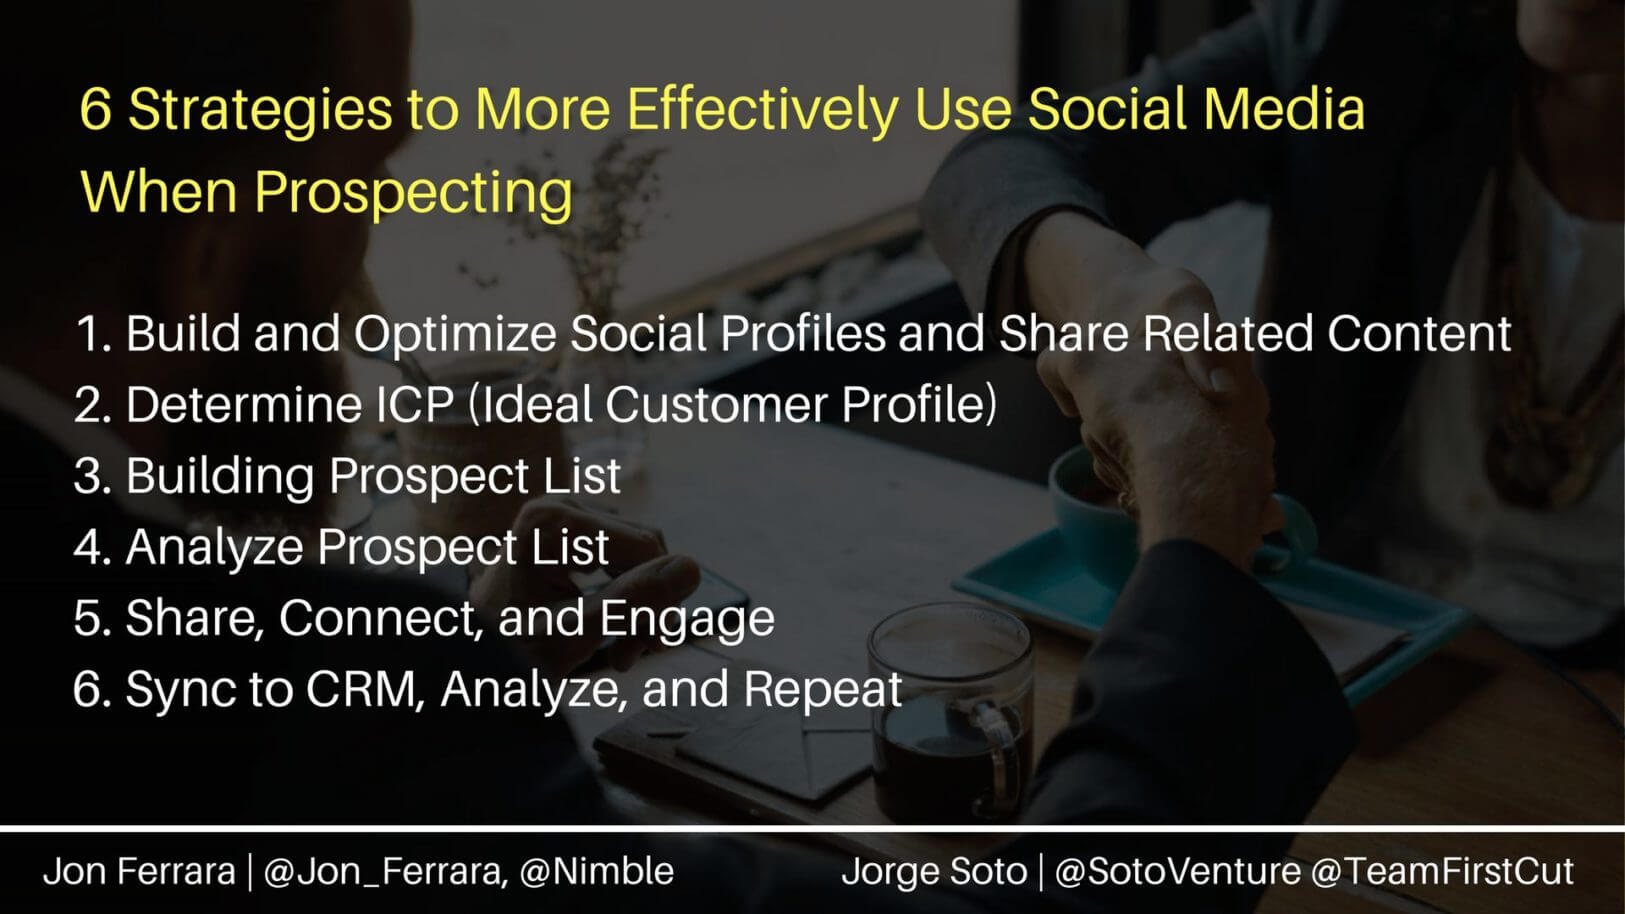 6 Strategies to More Effectively Use Social Media When Prospecting